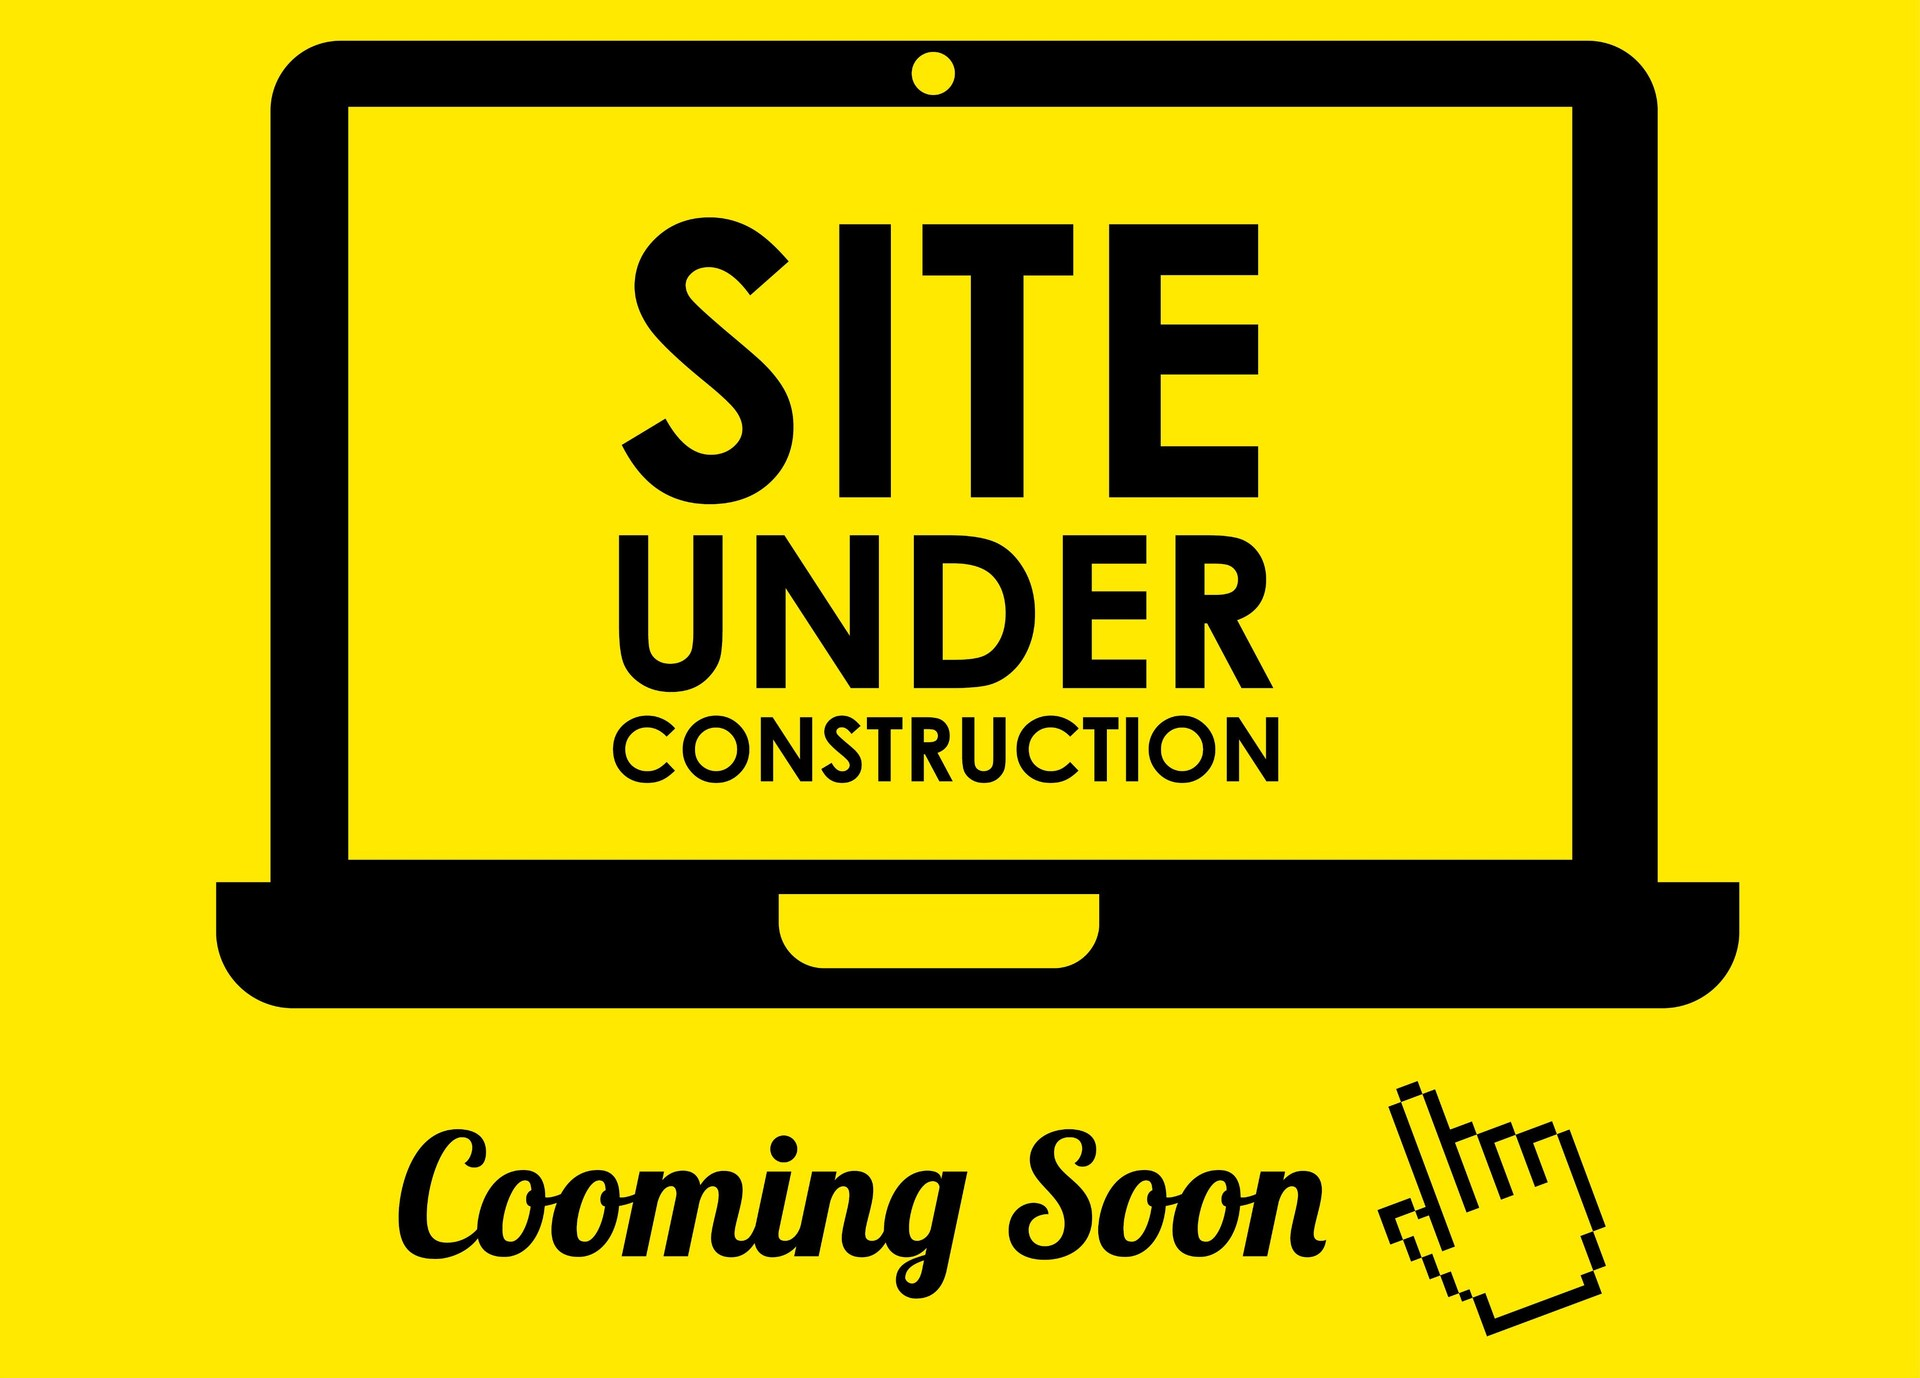 This web page is under construction